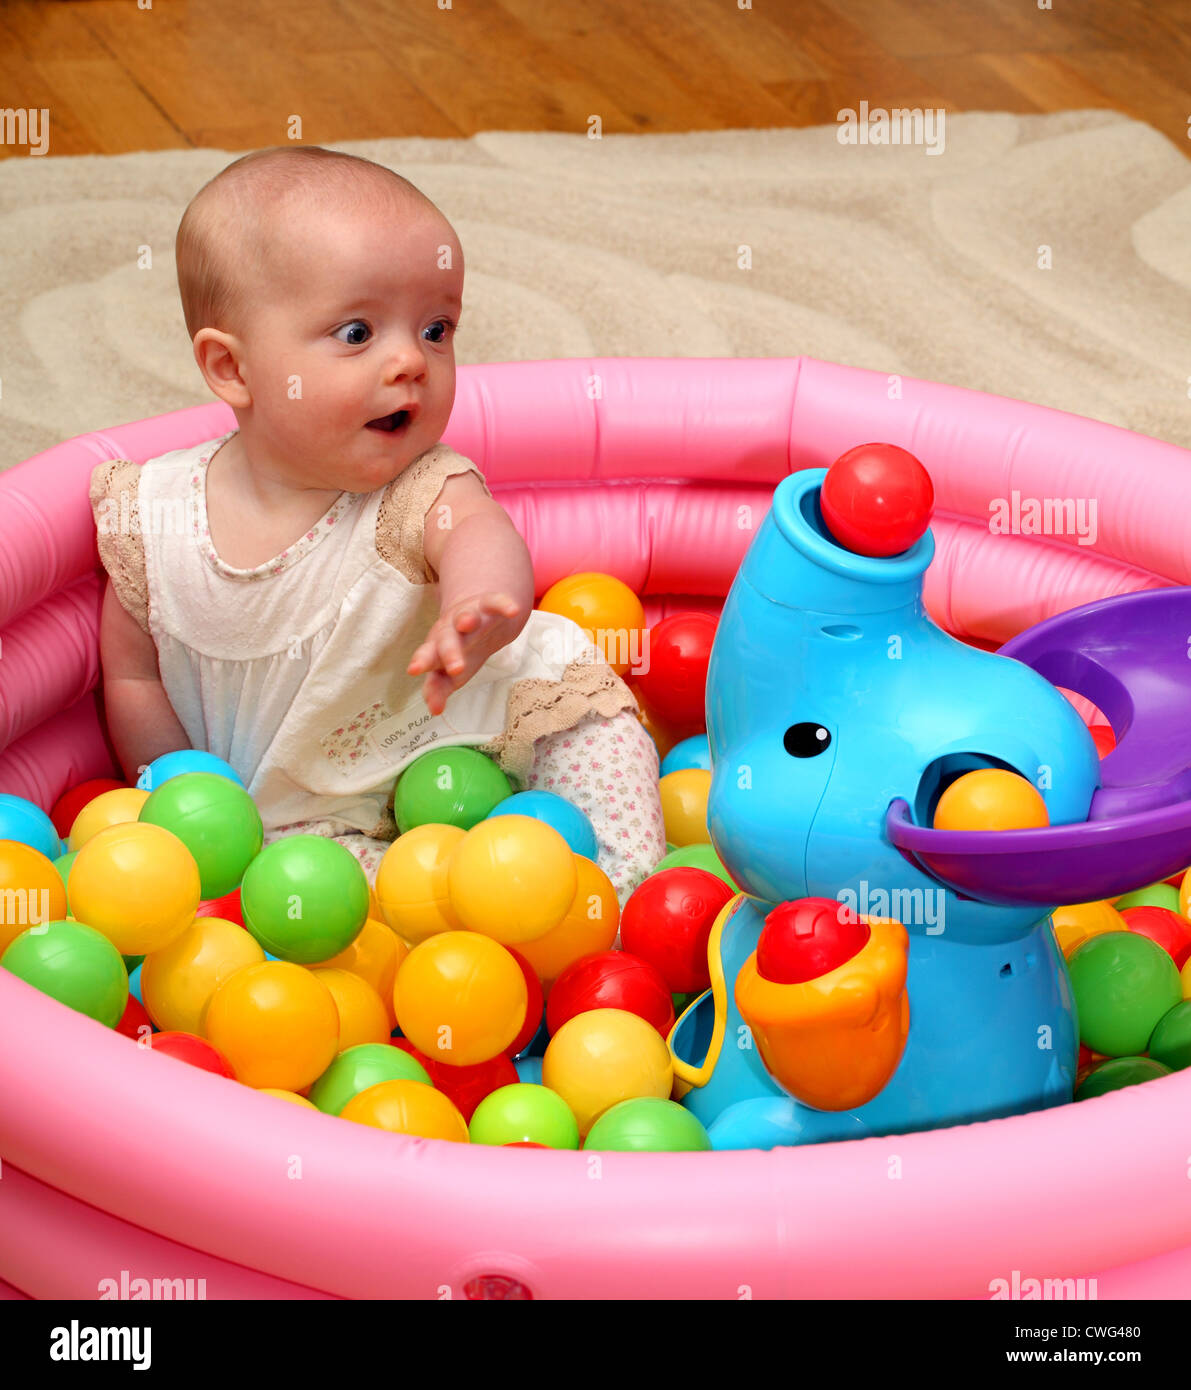 a 6 month old baby girl looks surprised as a ball pops out of the toy stock photo 50141728 alamy. Black Bedroom Furniture Sets. Home Design Ideas